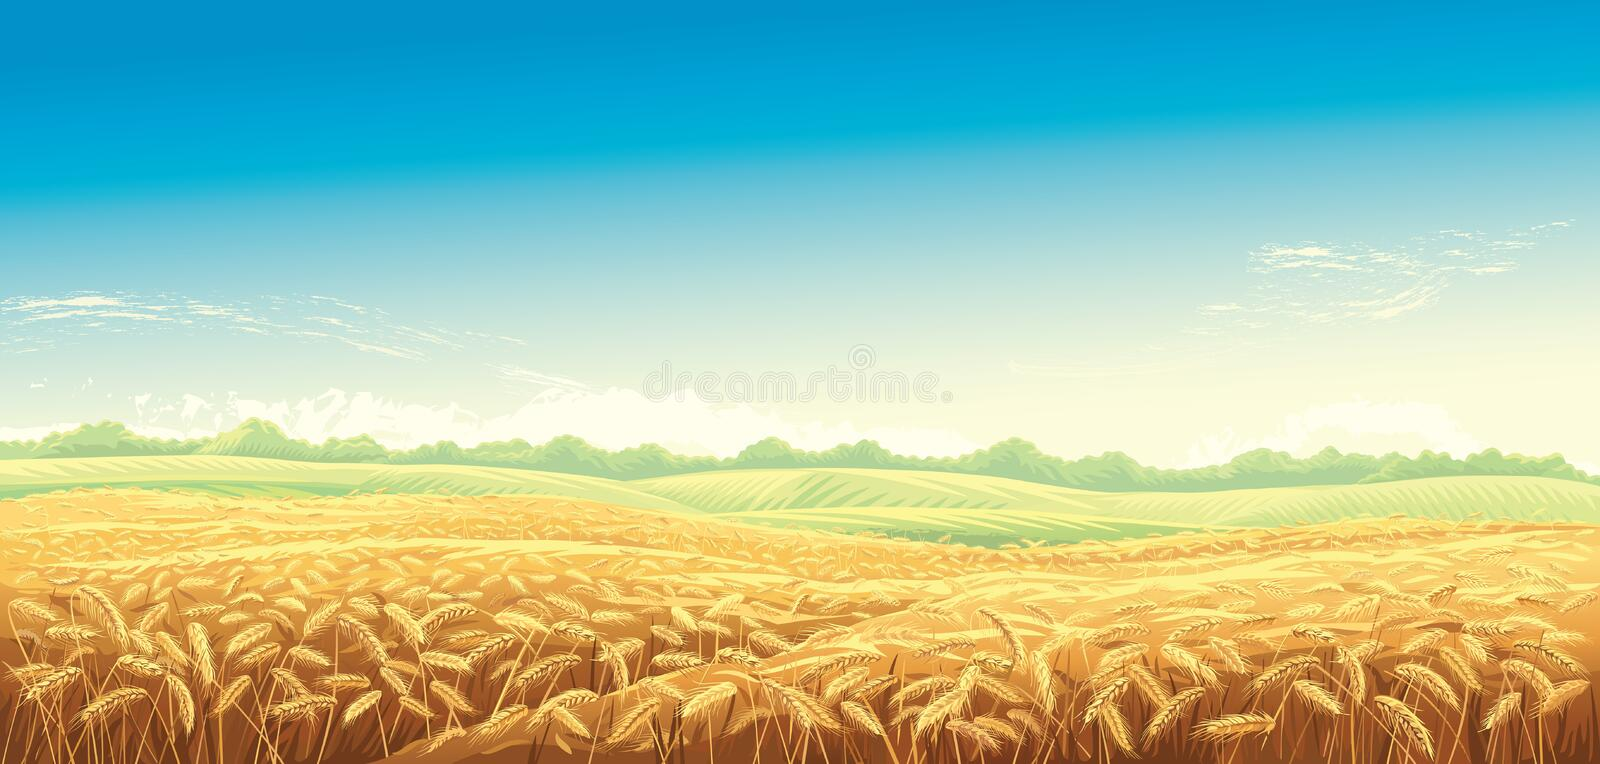 Rural landscape with wheat fields royalty free illustration